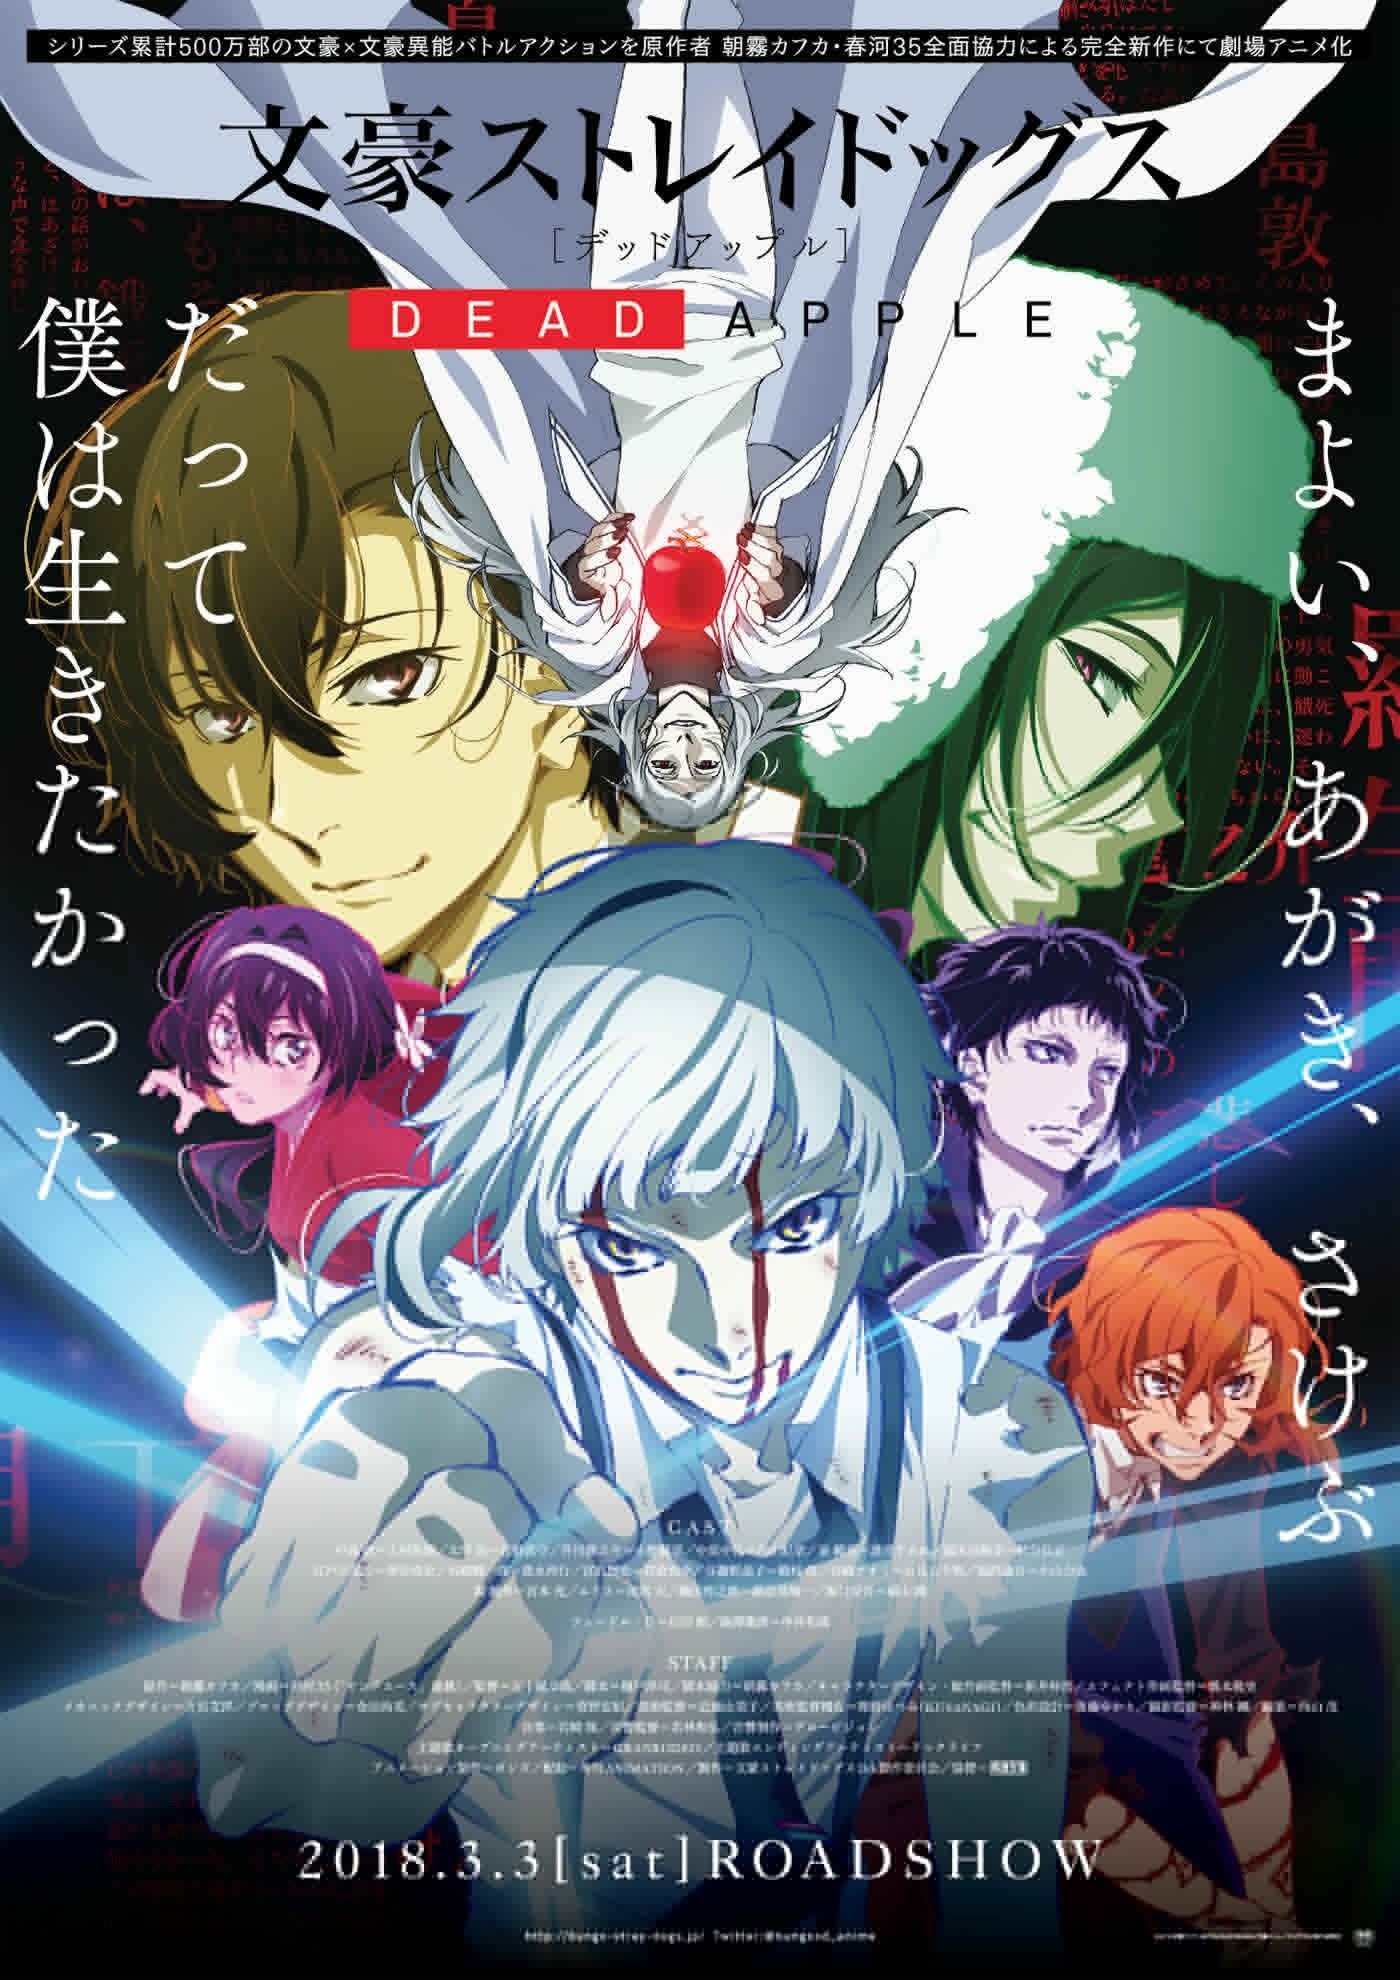 Pin by Maryam ; ) on bungou stray dogs Stray dogs anime